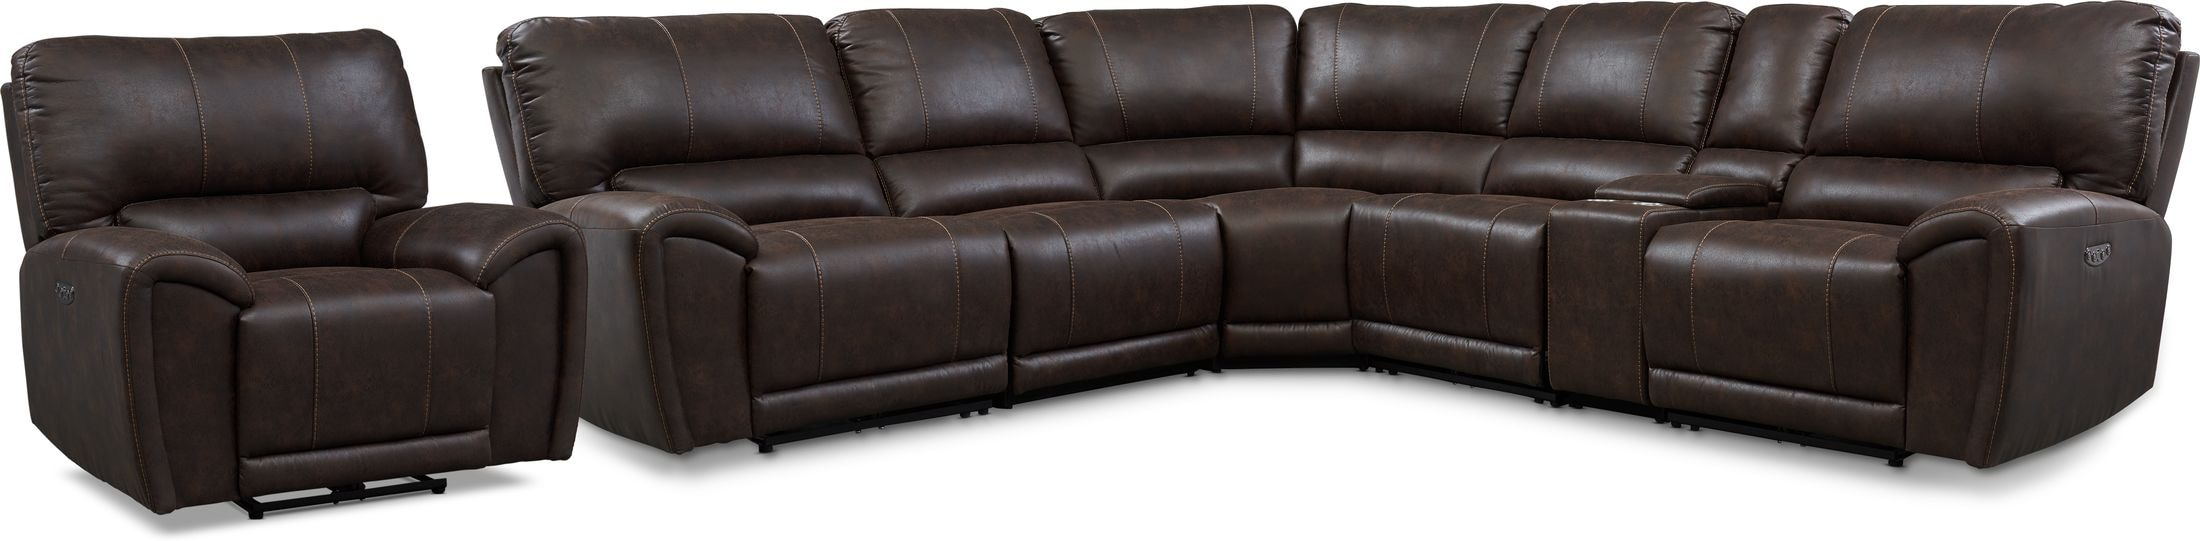 Living Room Furniture - Gallant 6-Piece Dual-Power Reclining Sectional and Recliner Set